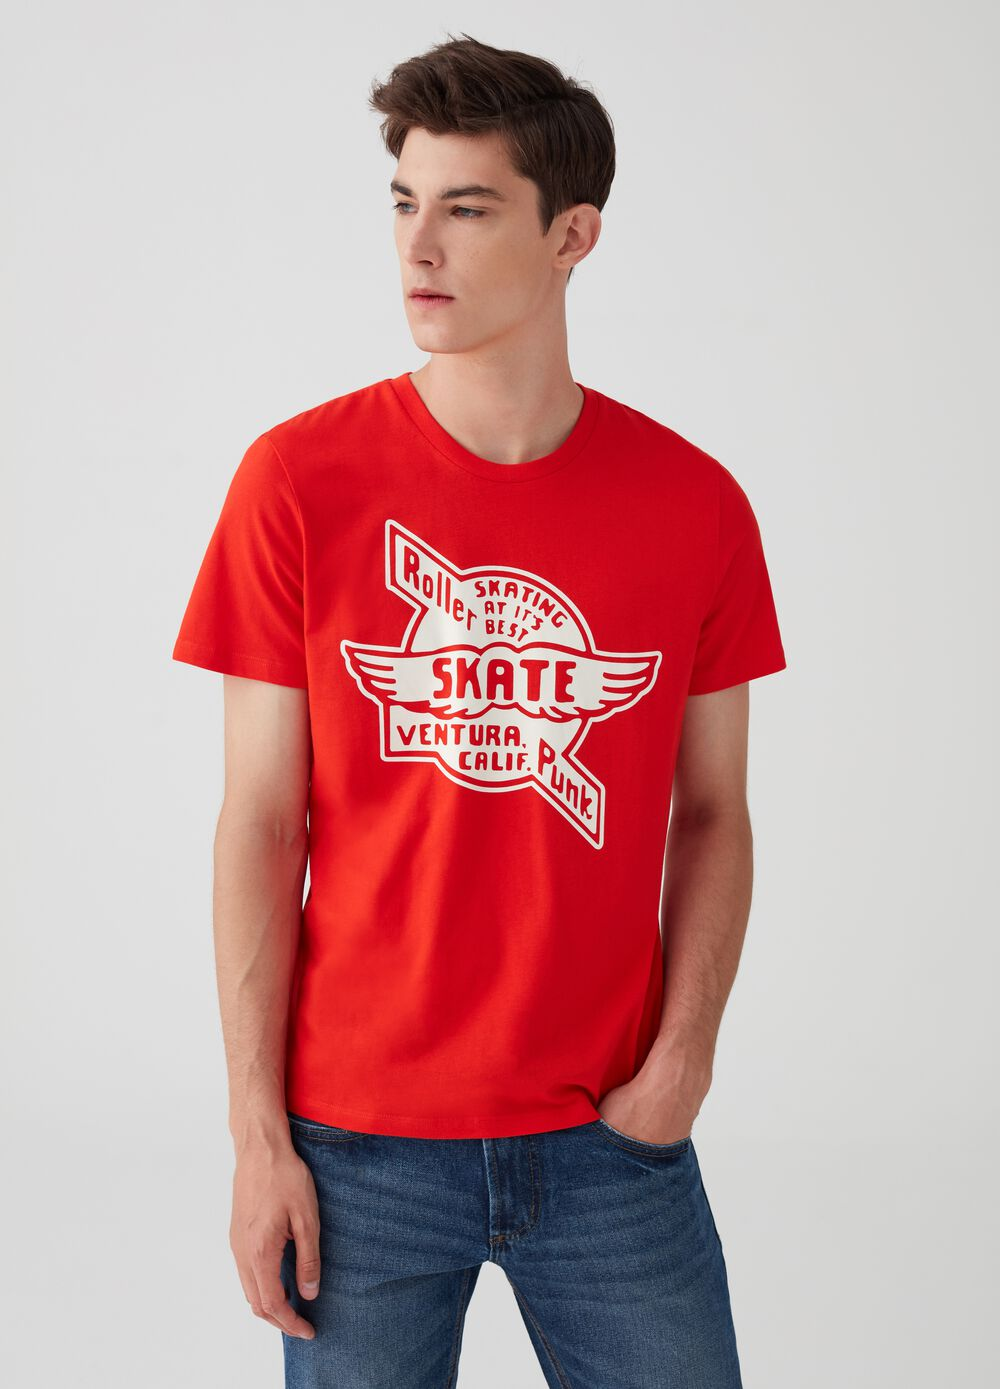 100% cotton T-shirt with lettering and skate print